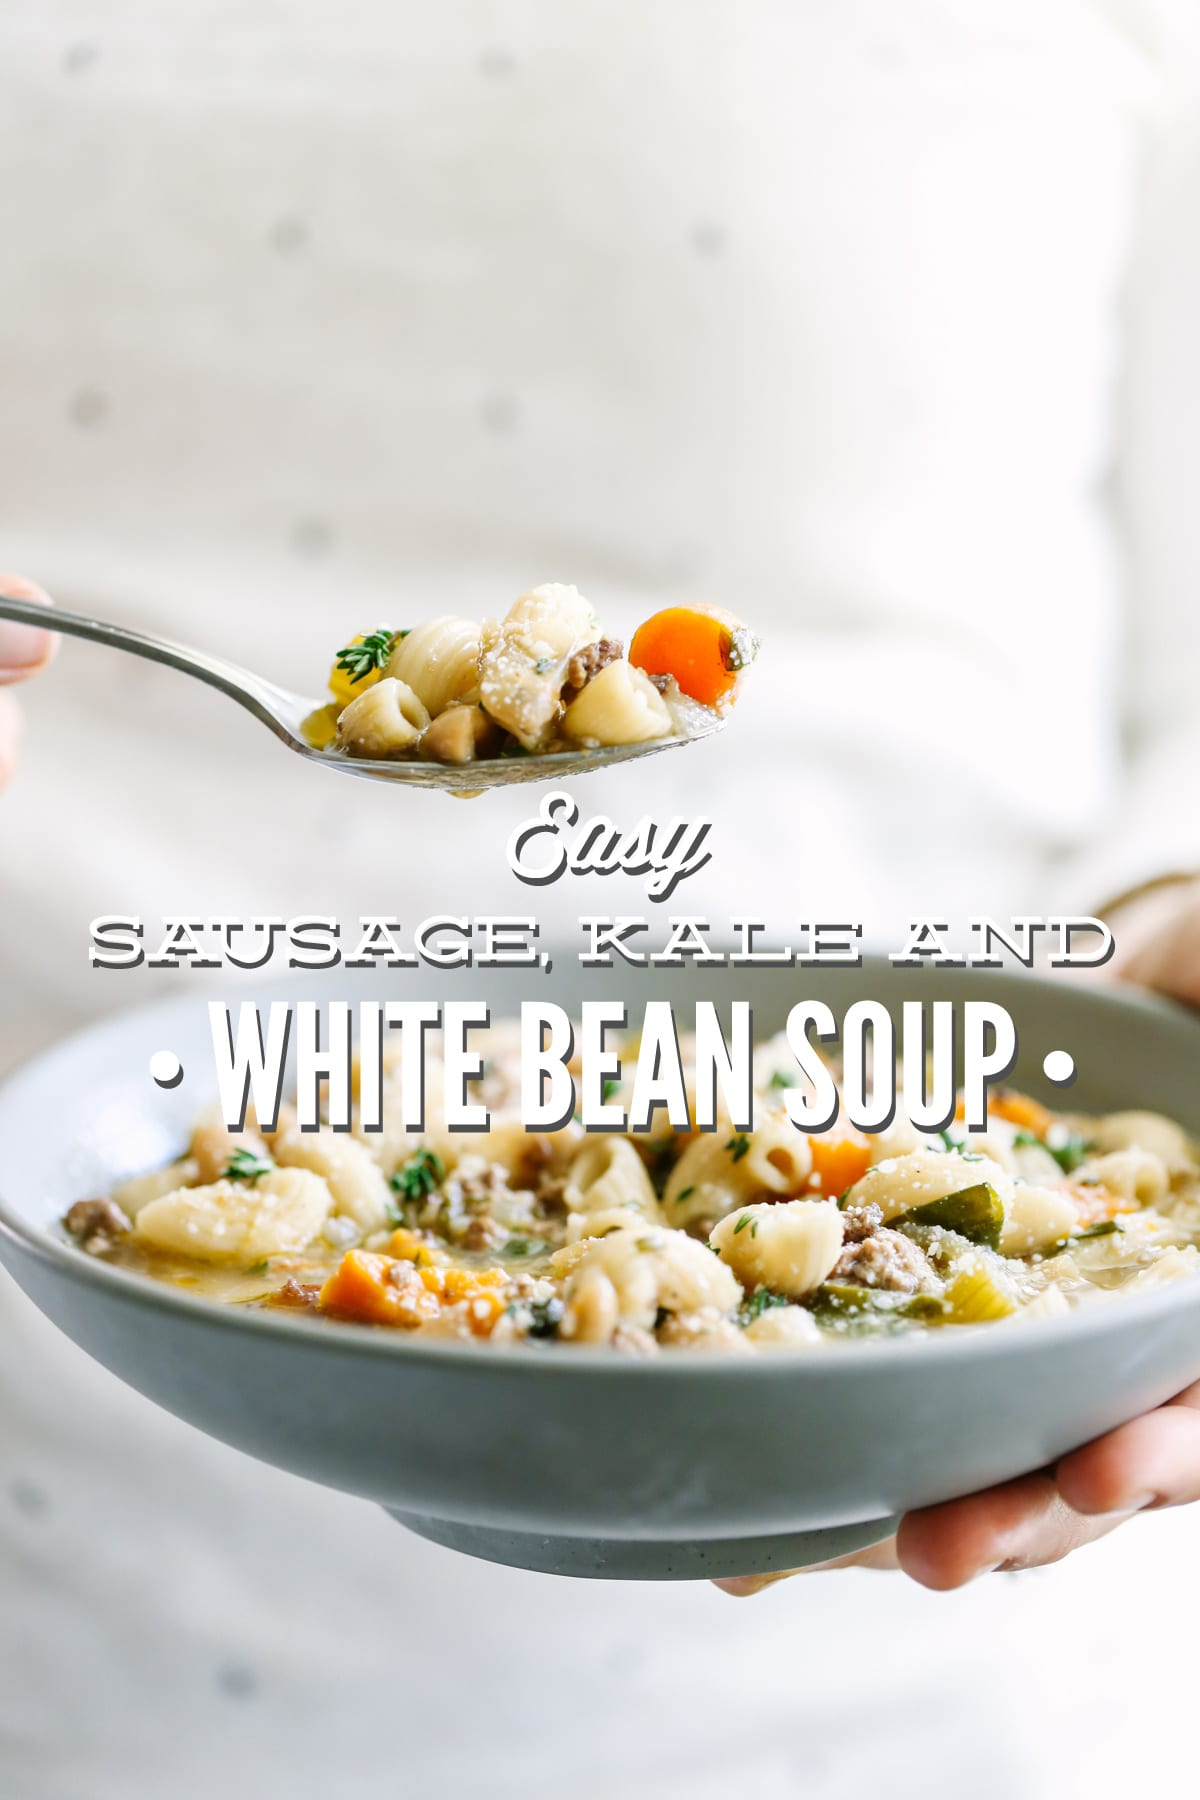 Easy Sausage, Kale, and White Bean Soup